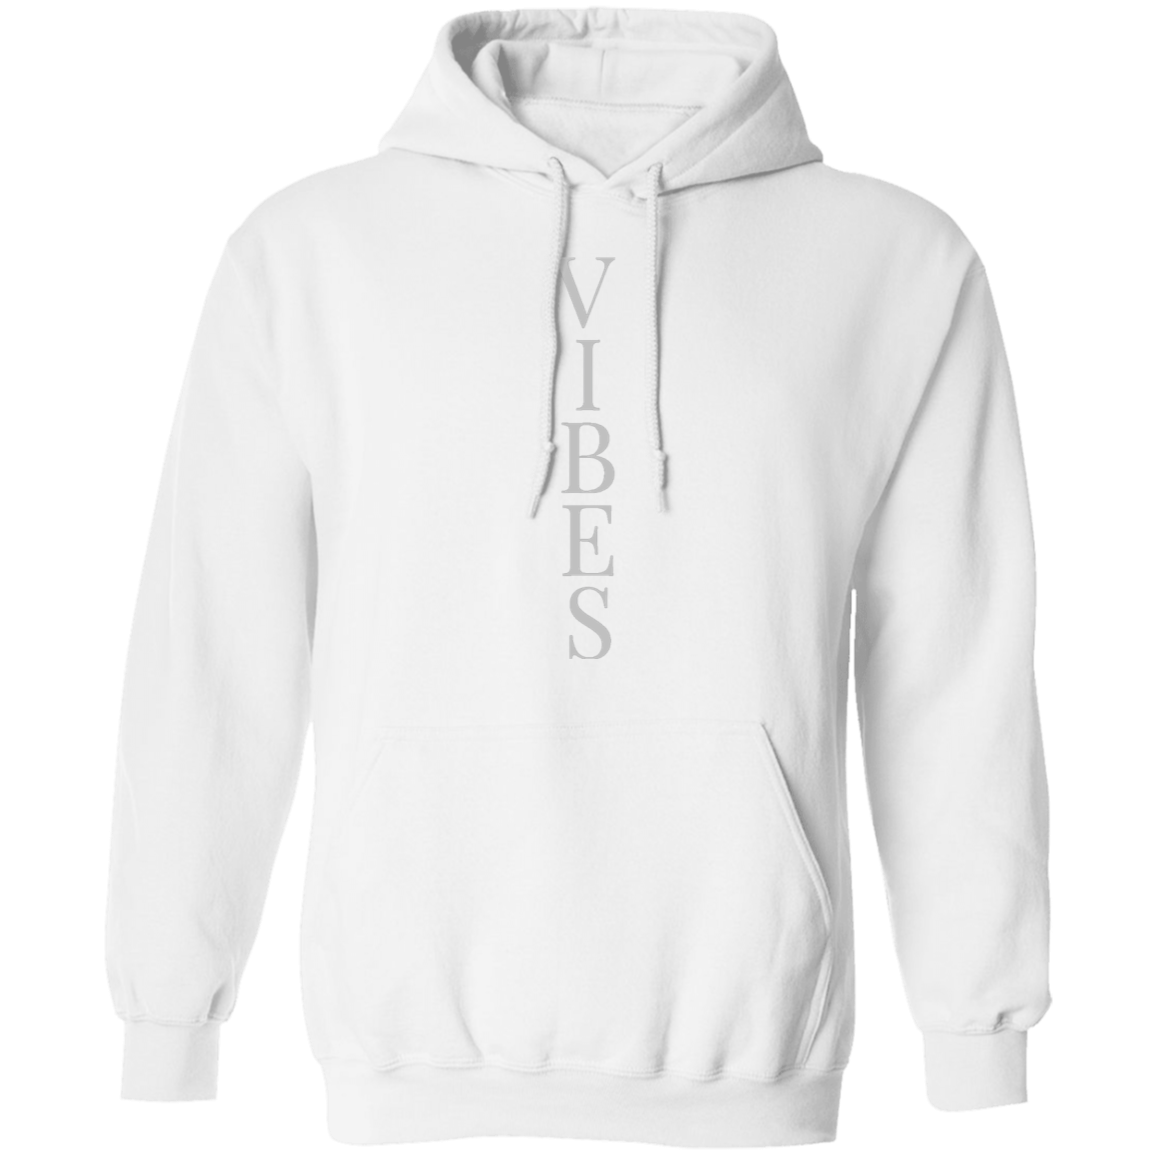 Vibes Silver Pullover Hoodie